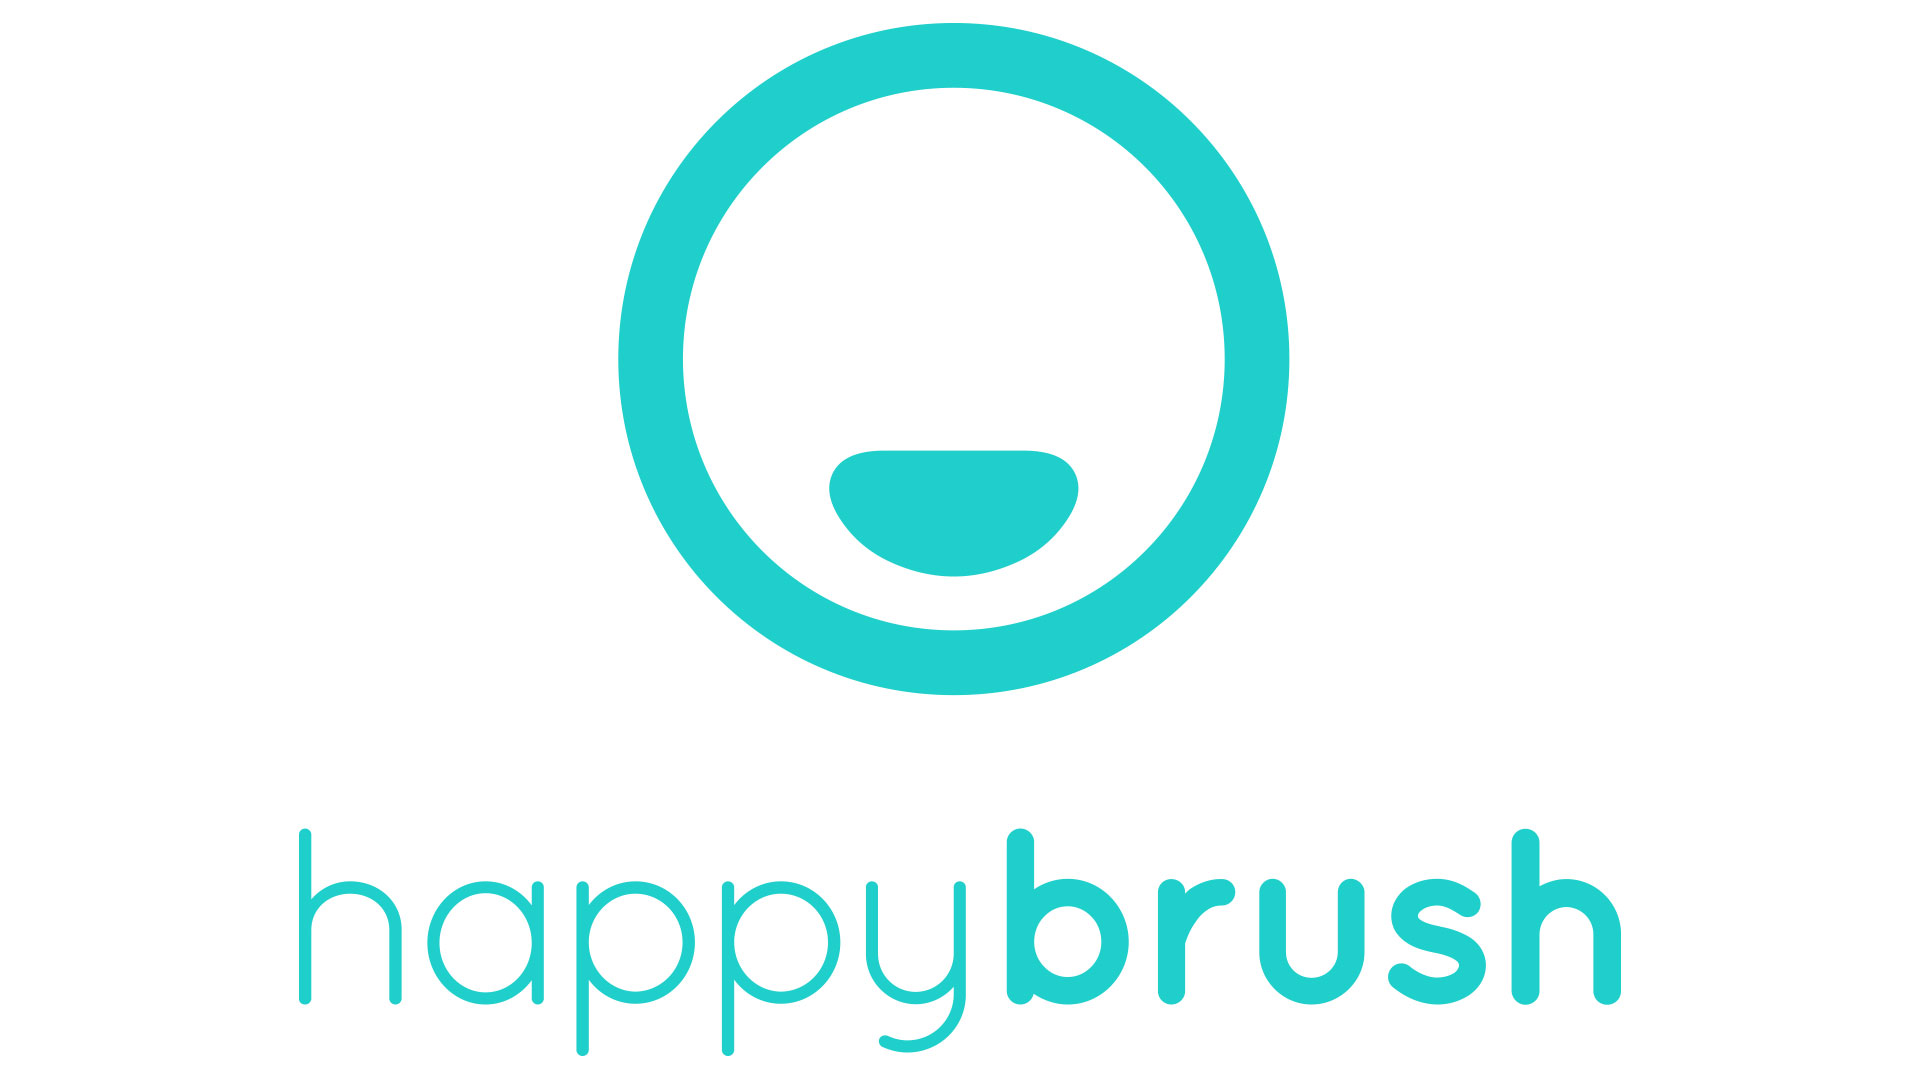 happy brush